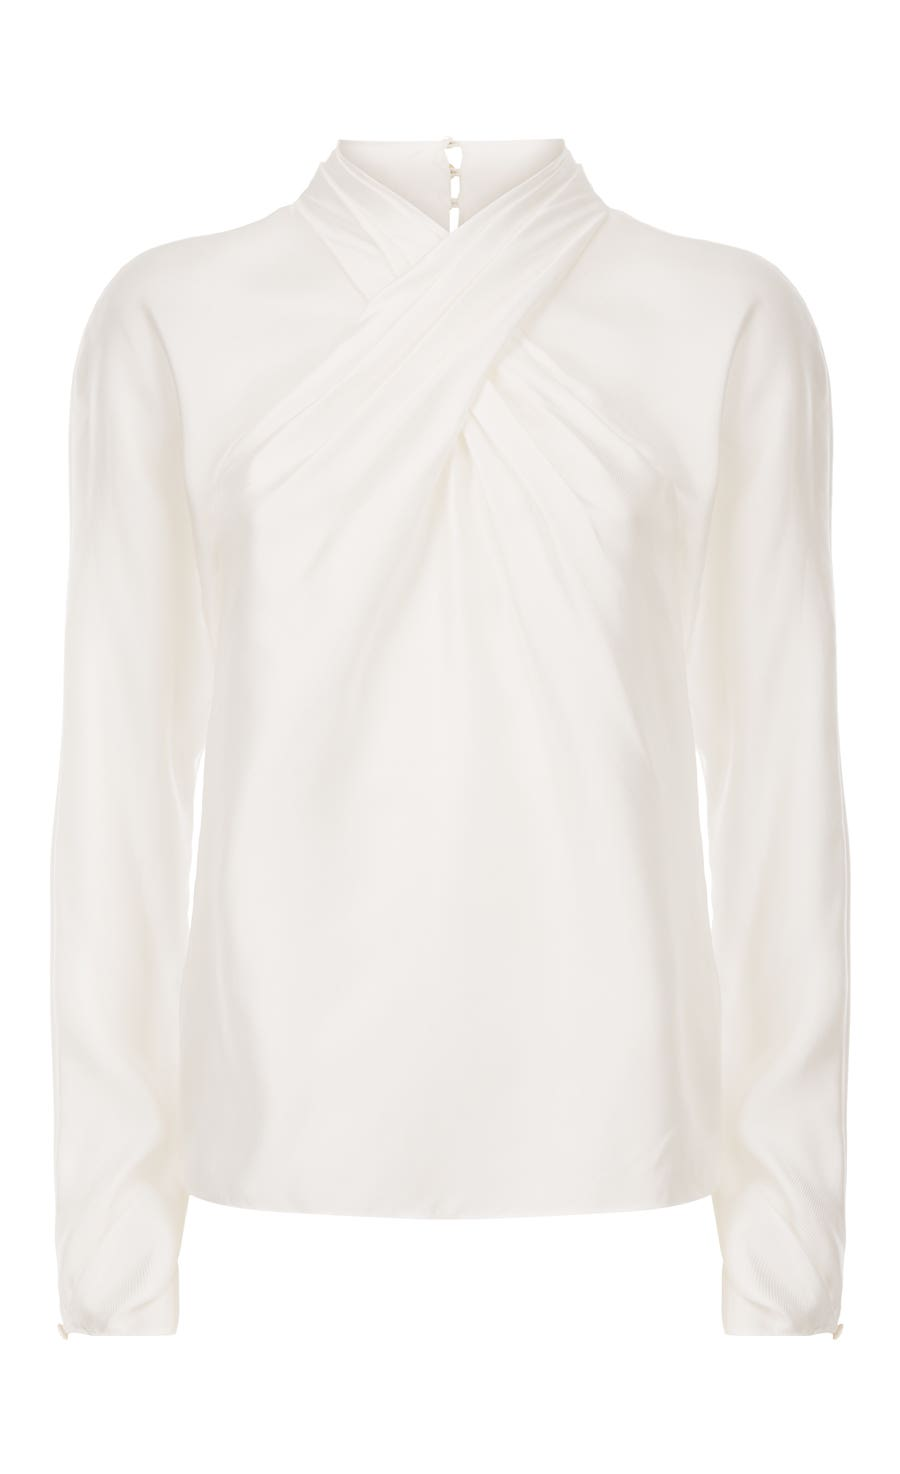 Seabright Blouse, White